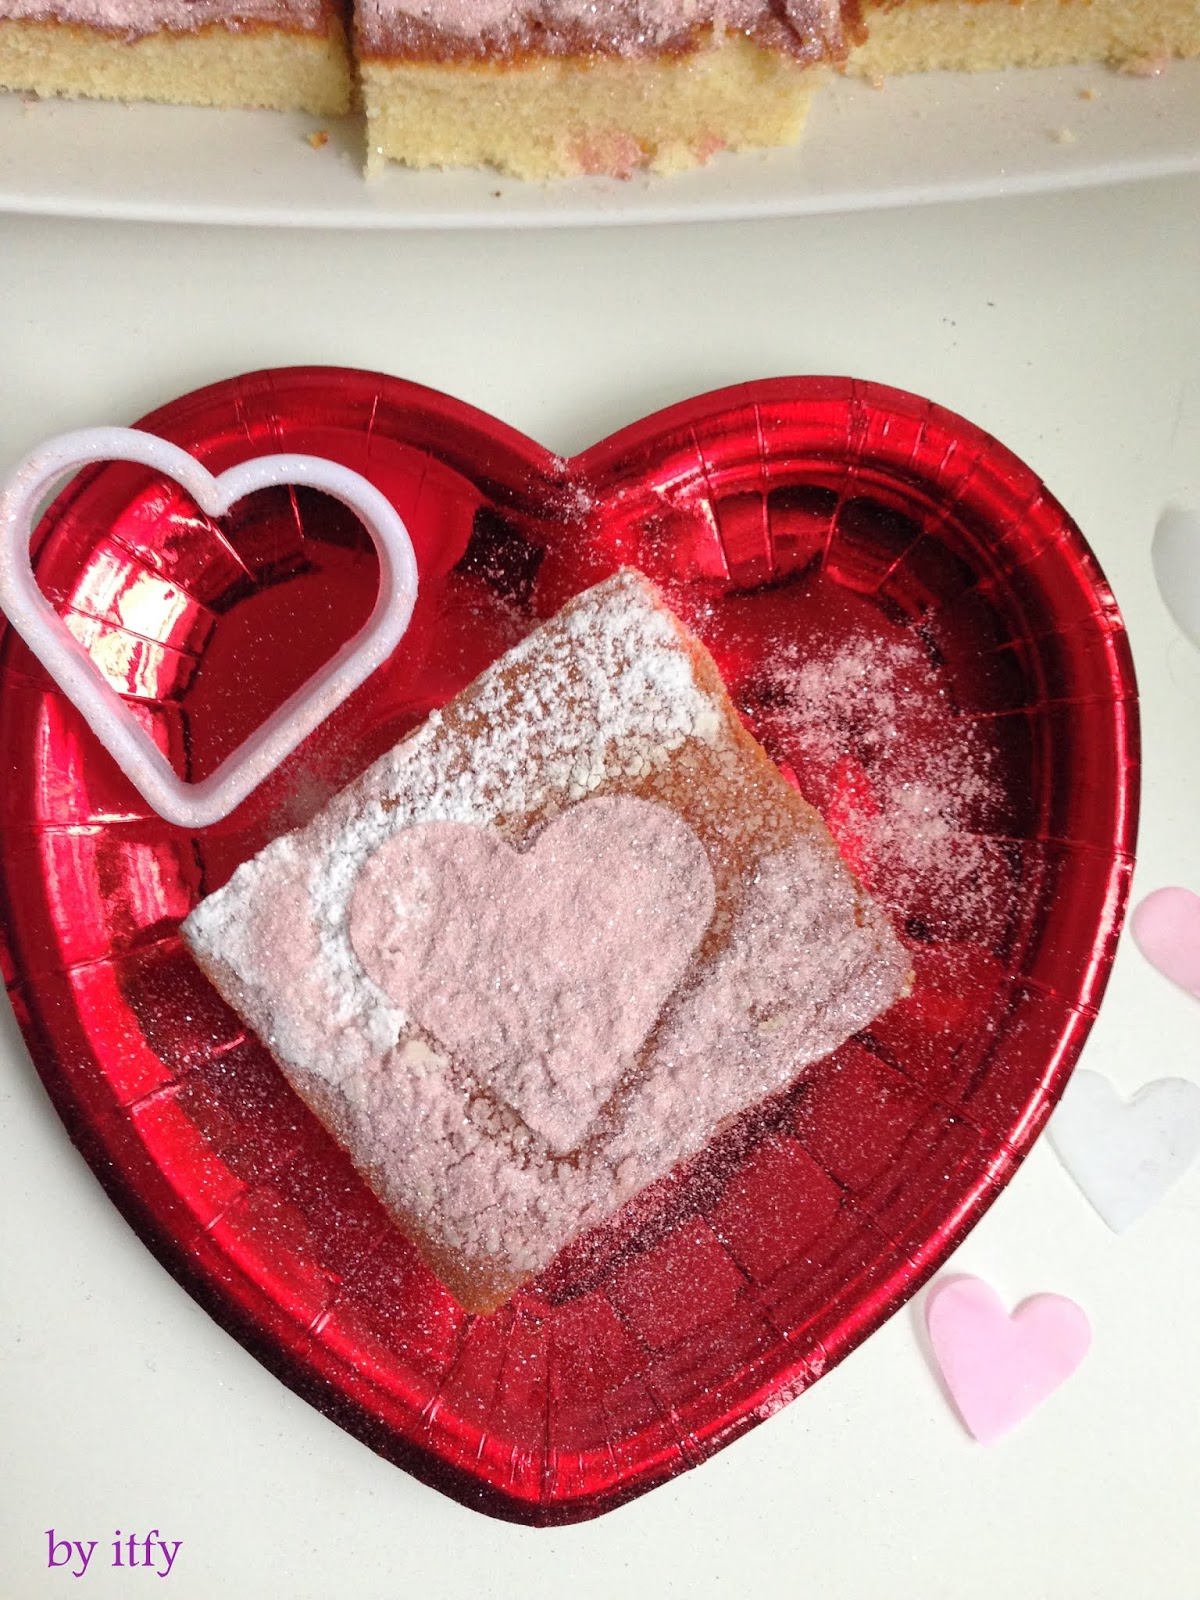 I Test For You Sonntagskuchen Hot Milk Cake Im Valentinstag Look